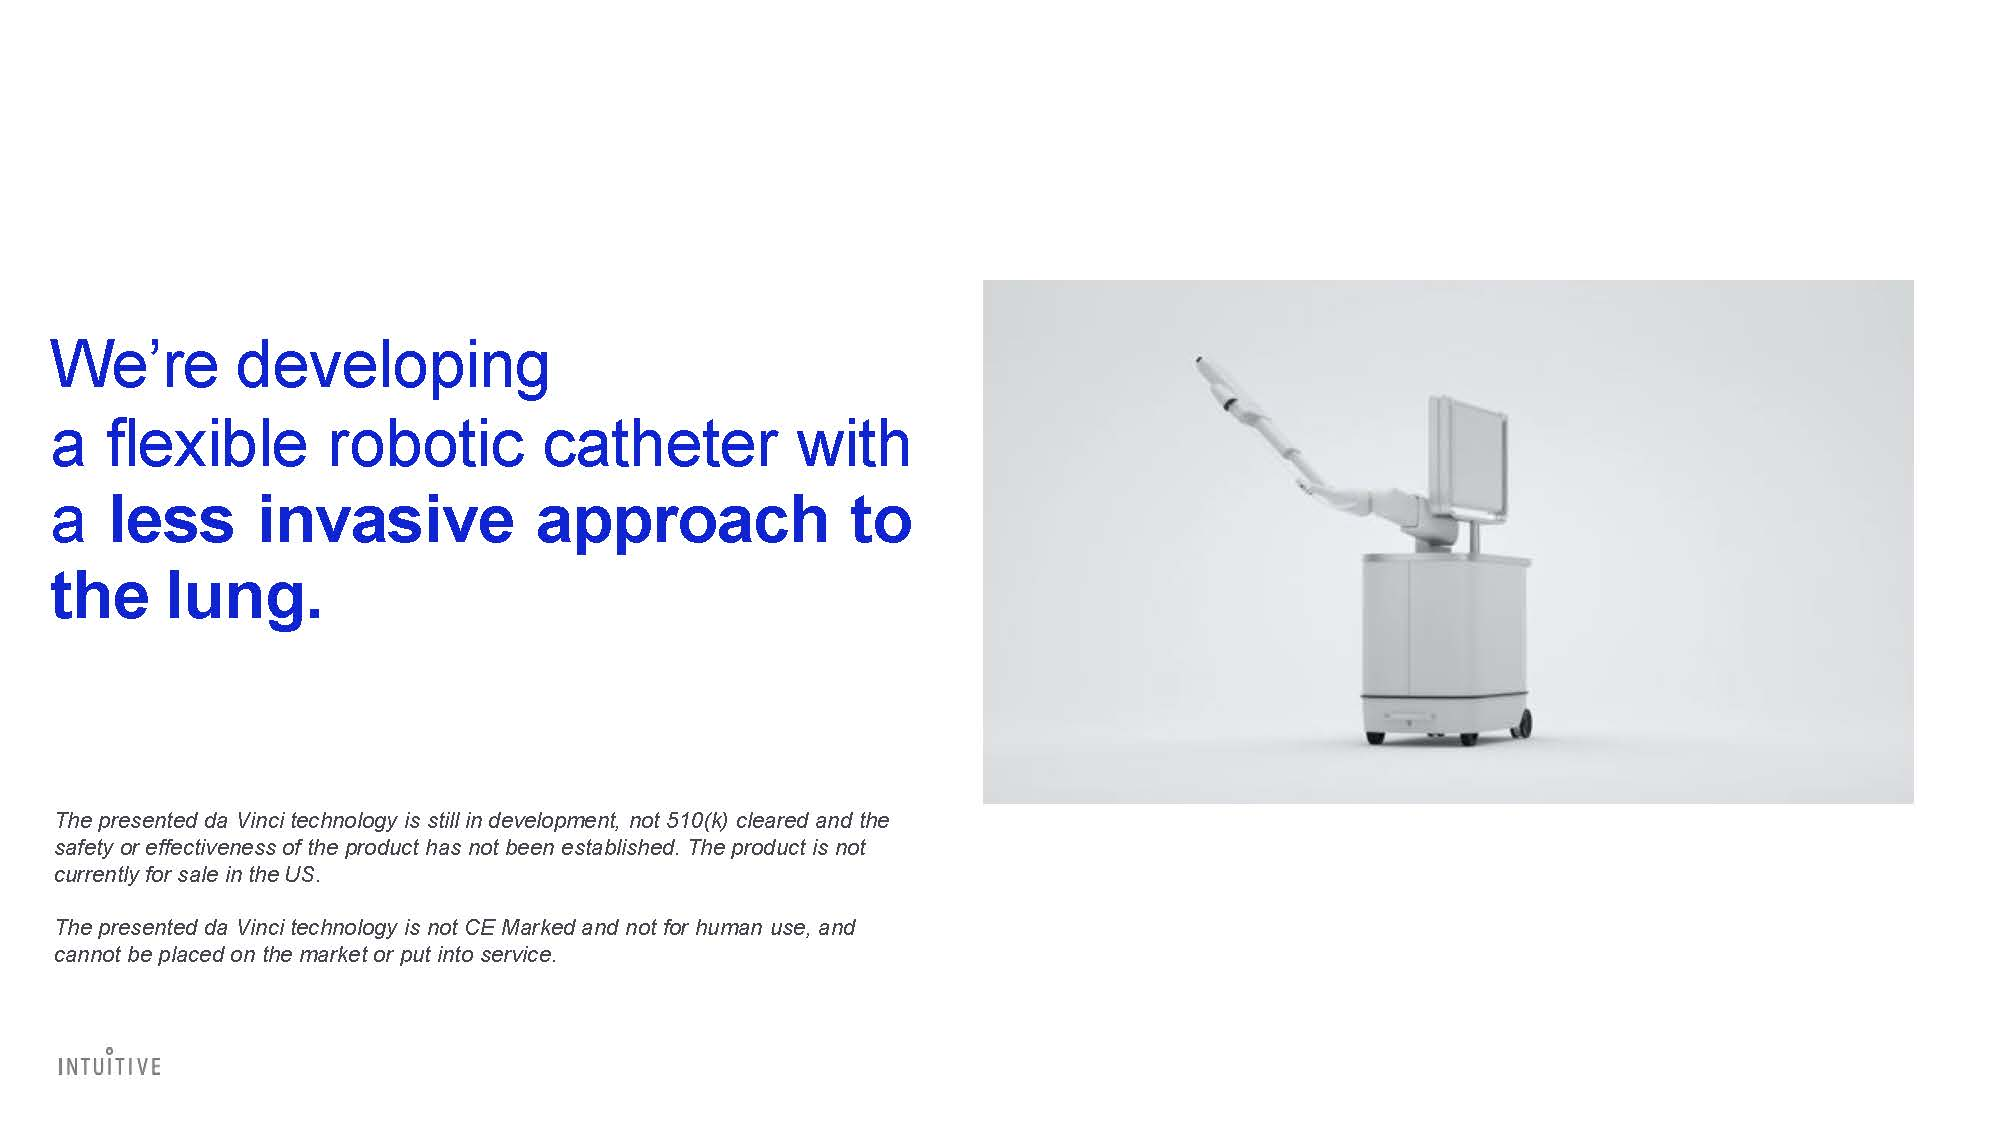 376731845-Intuitive-Surgical-Investor-Presentation-021218_Page_21.jpg